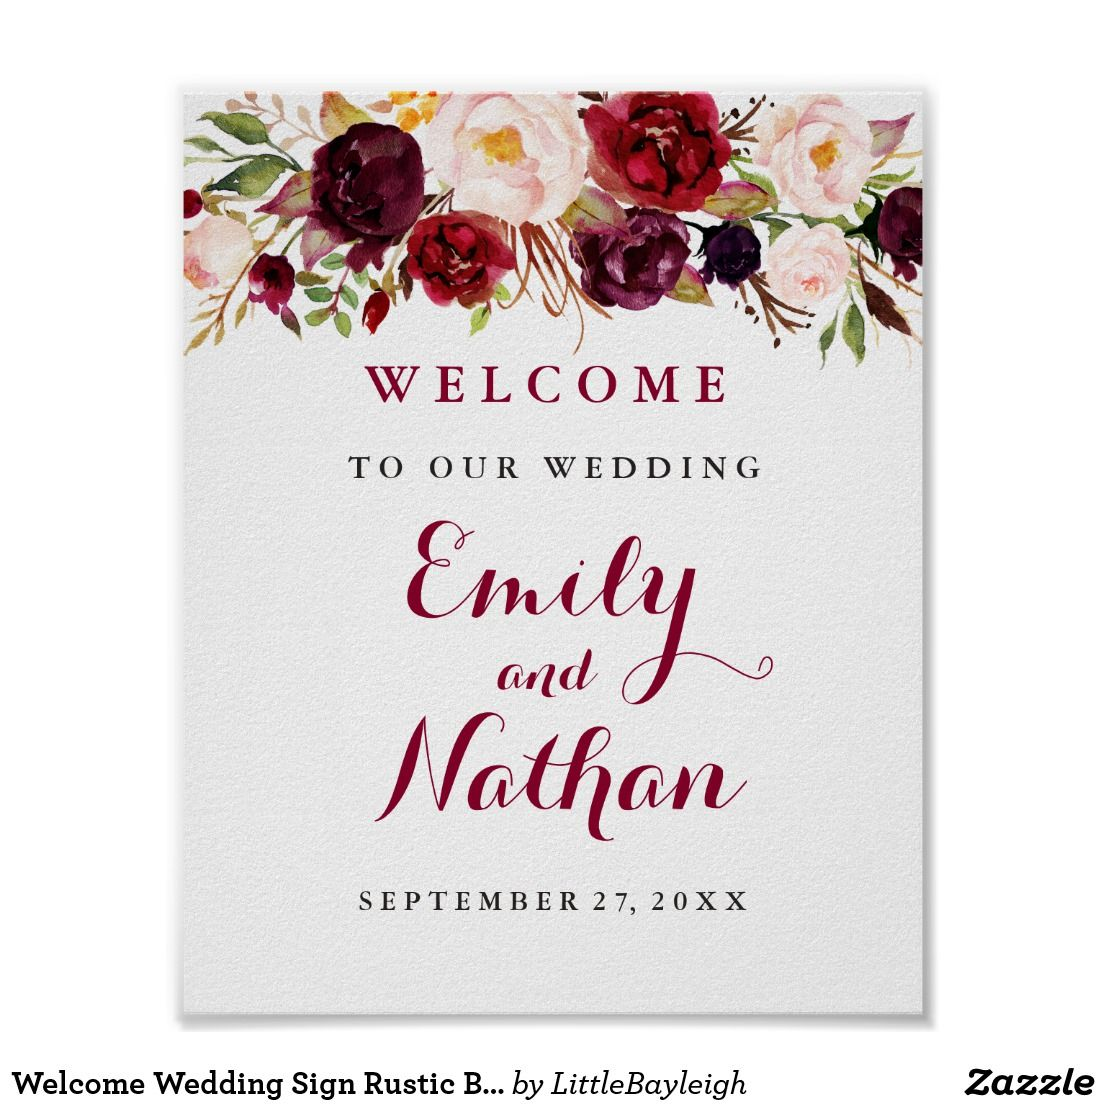 Welcome Wedding Sign Rustic Burgundy Red Floral Weddings